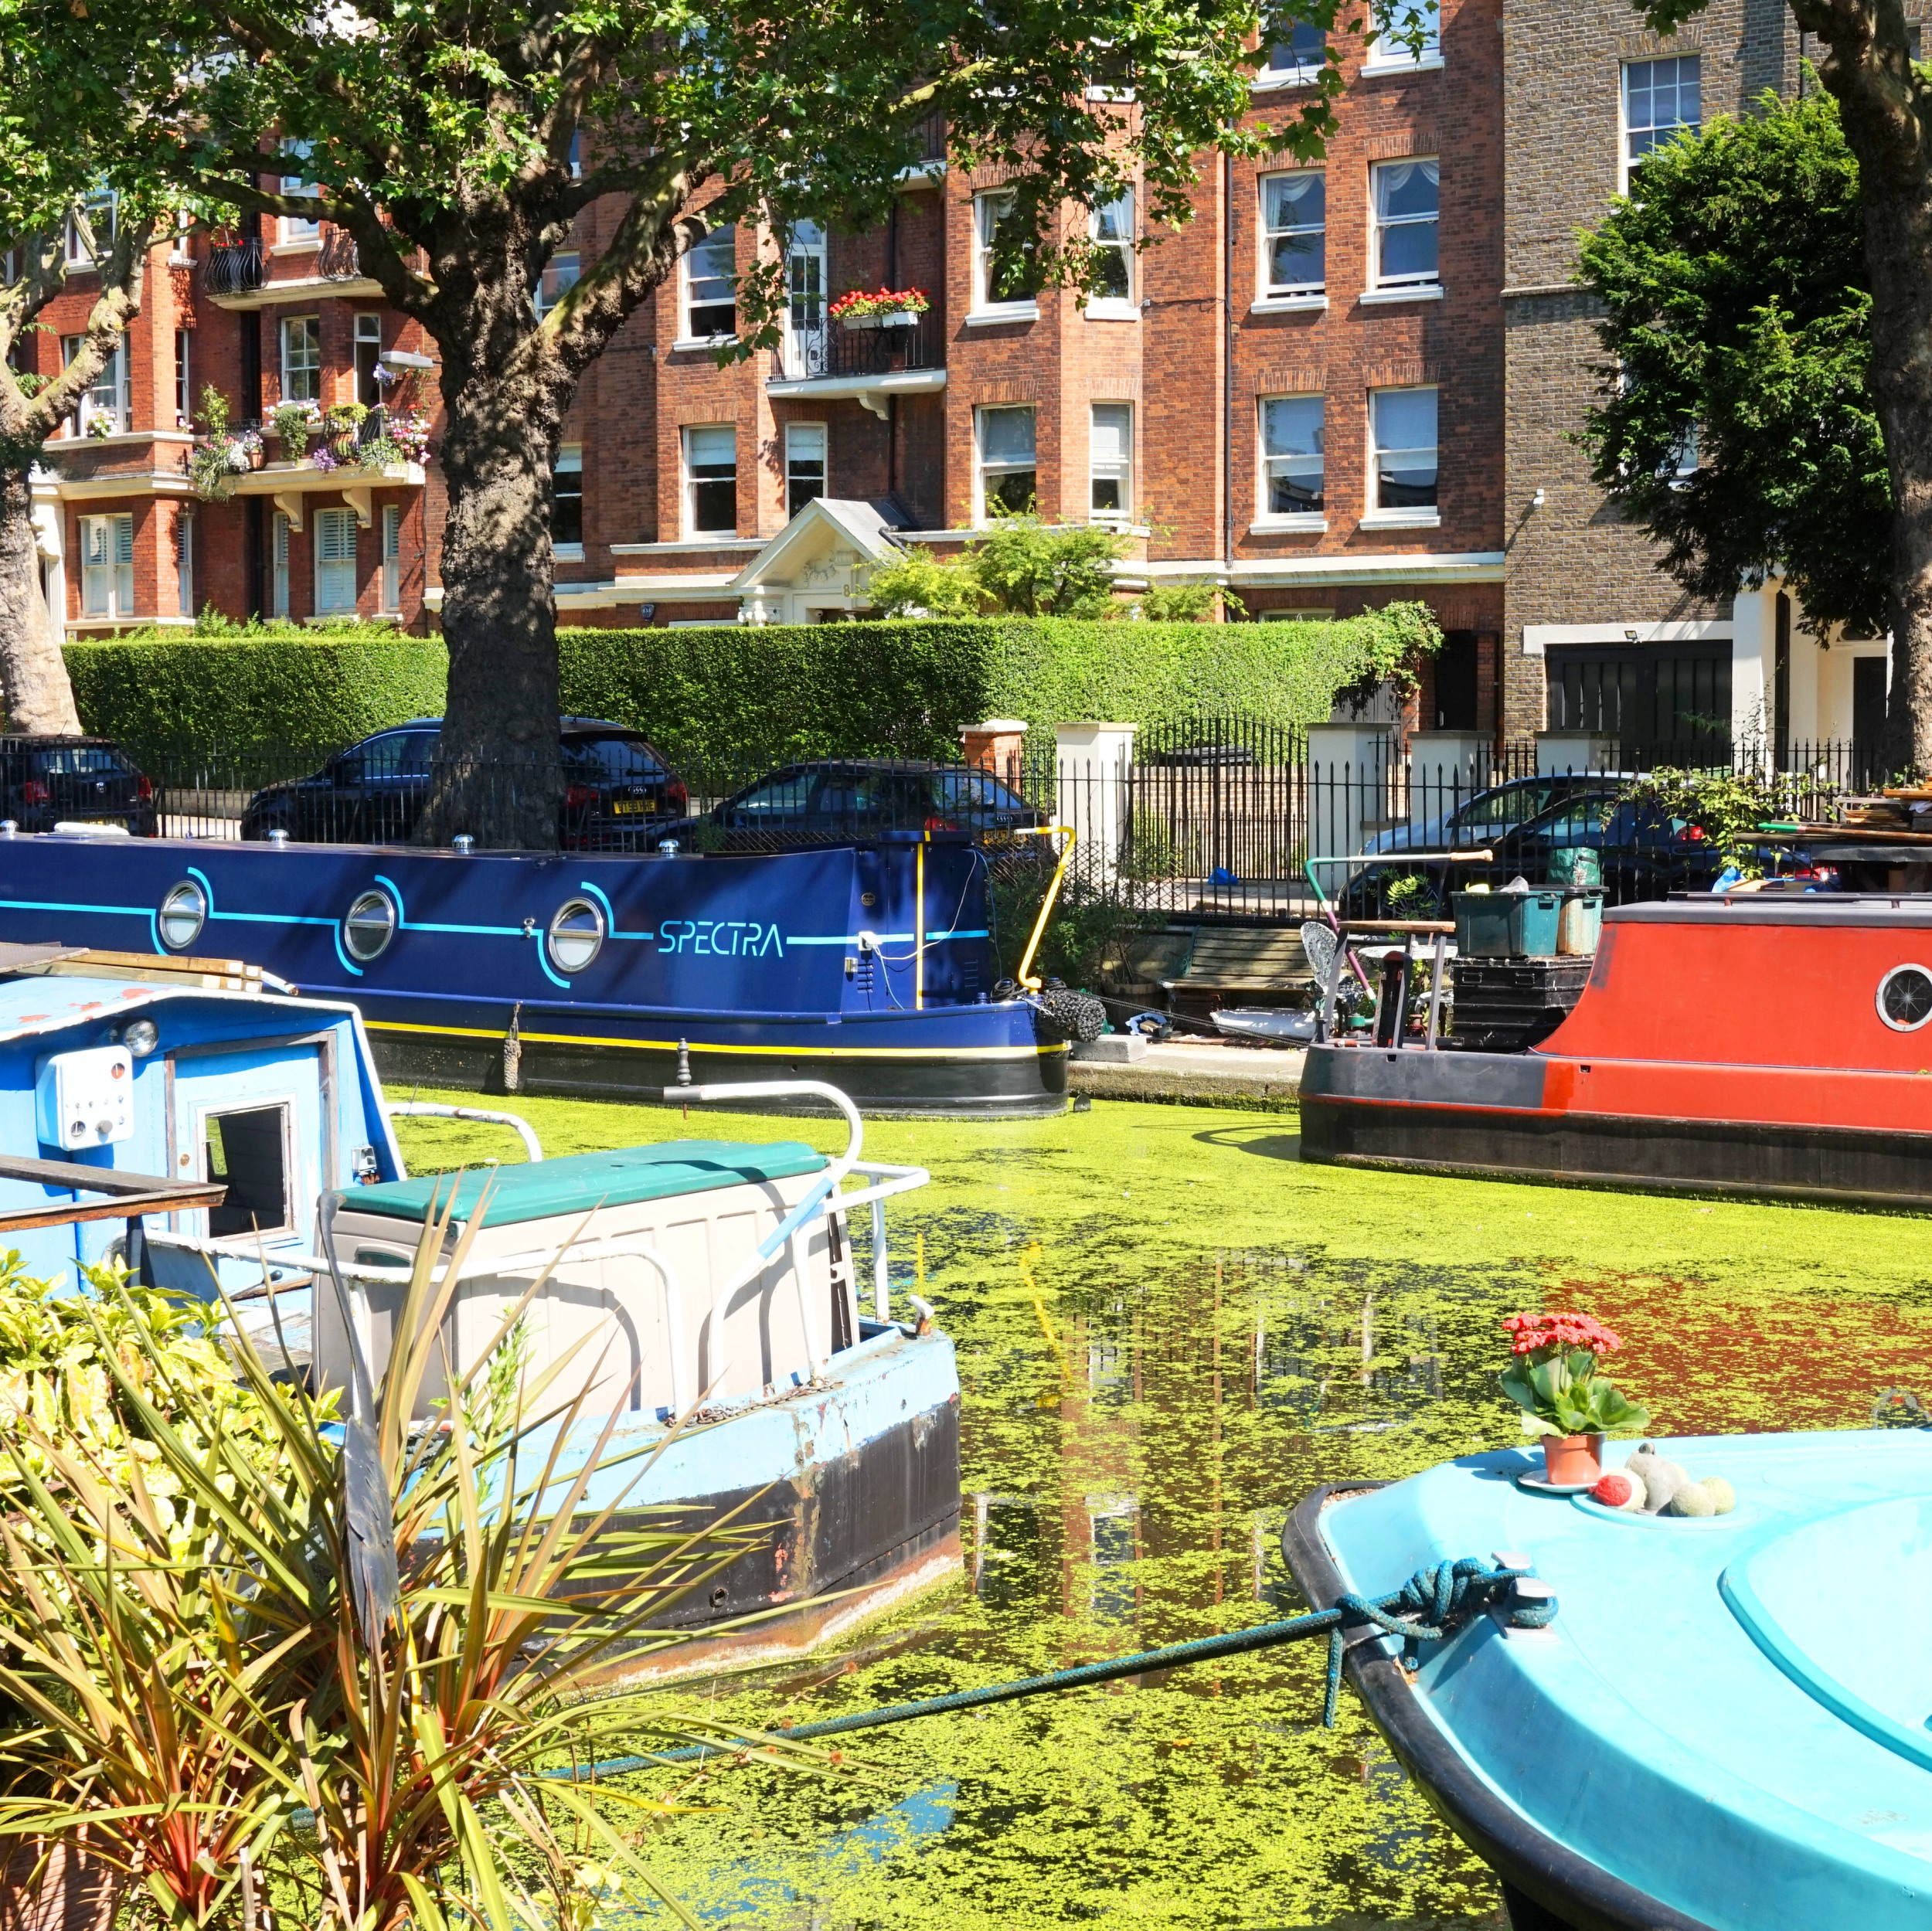 Regents-Canal-26